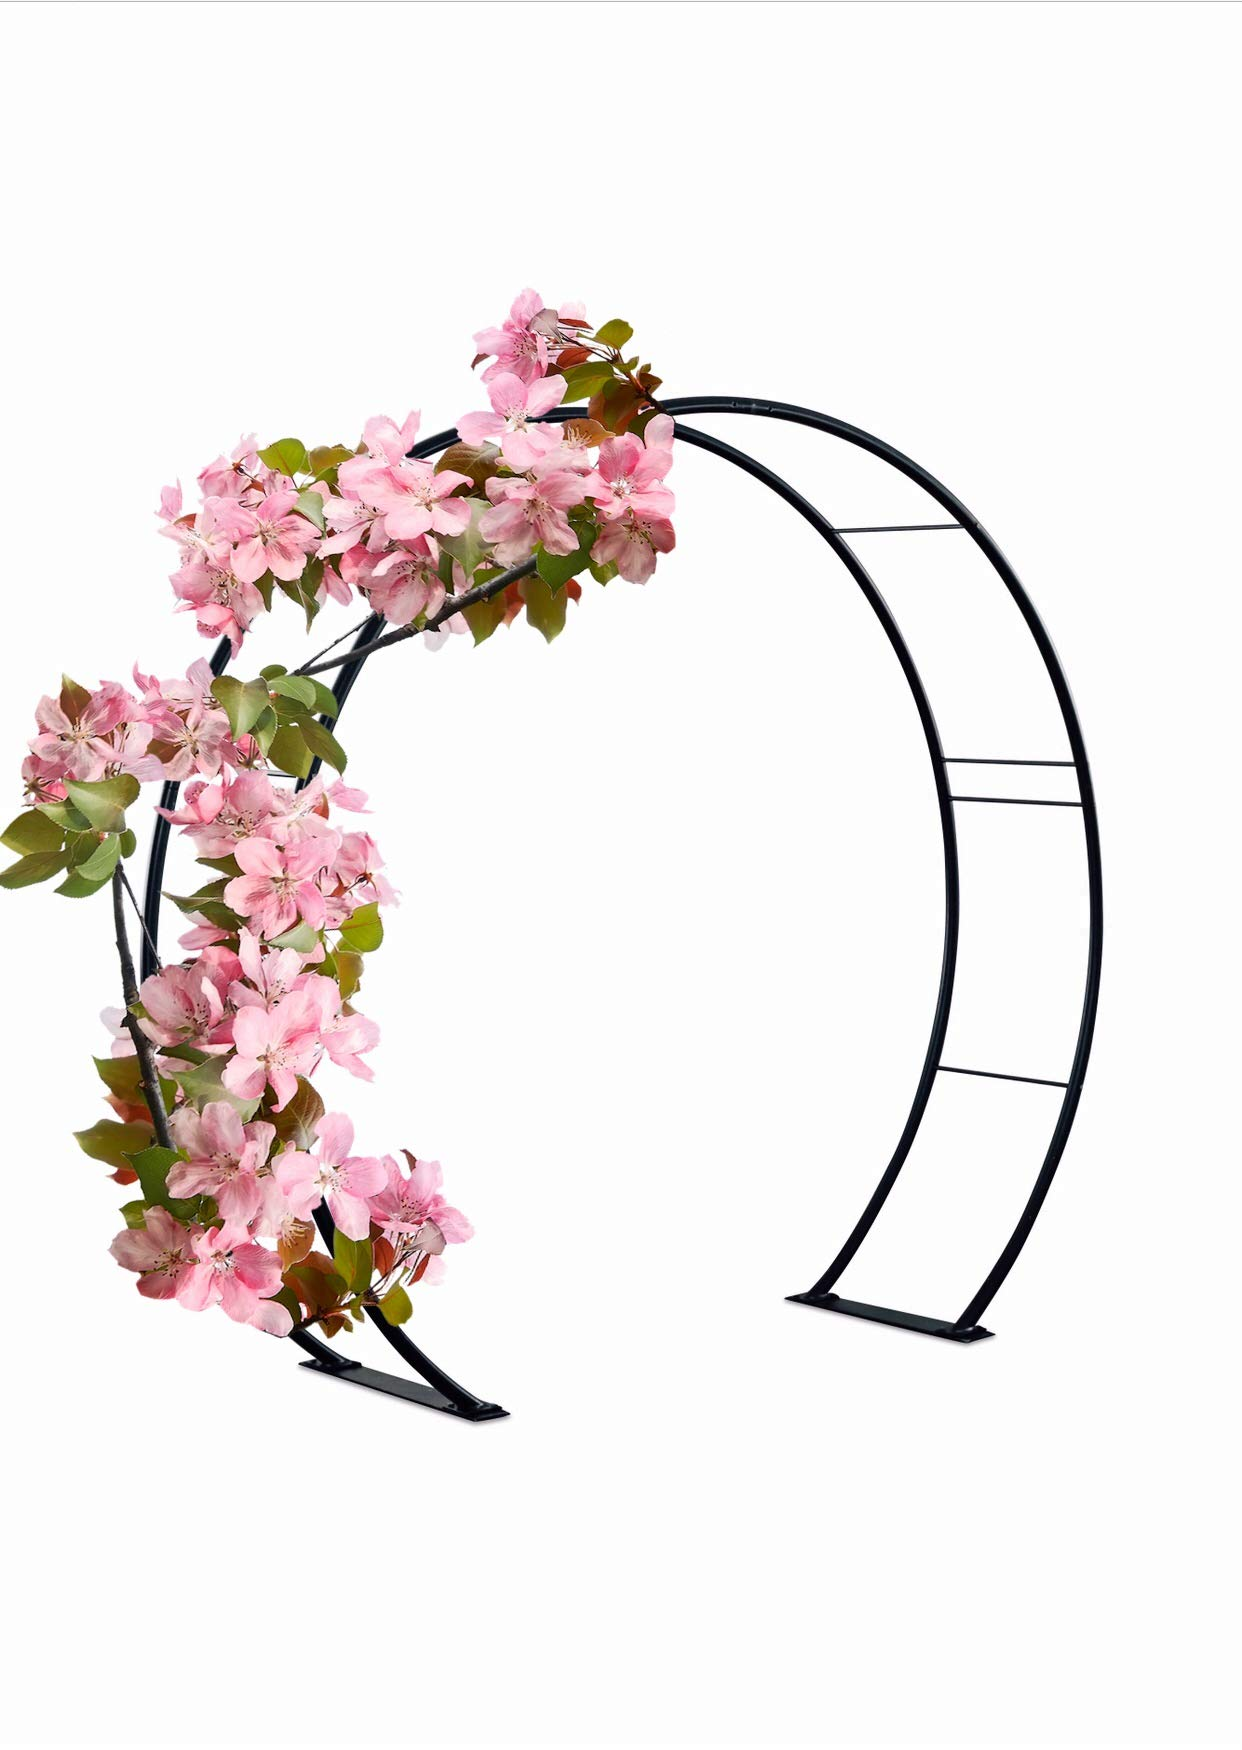 Kinsman 81'' H x 87'' W Moon Gate Circle Garden and Wedding Arch